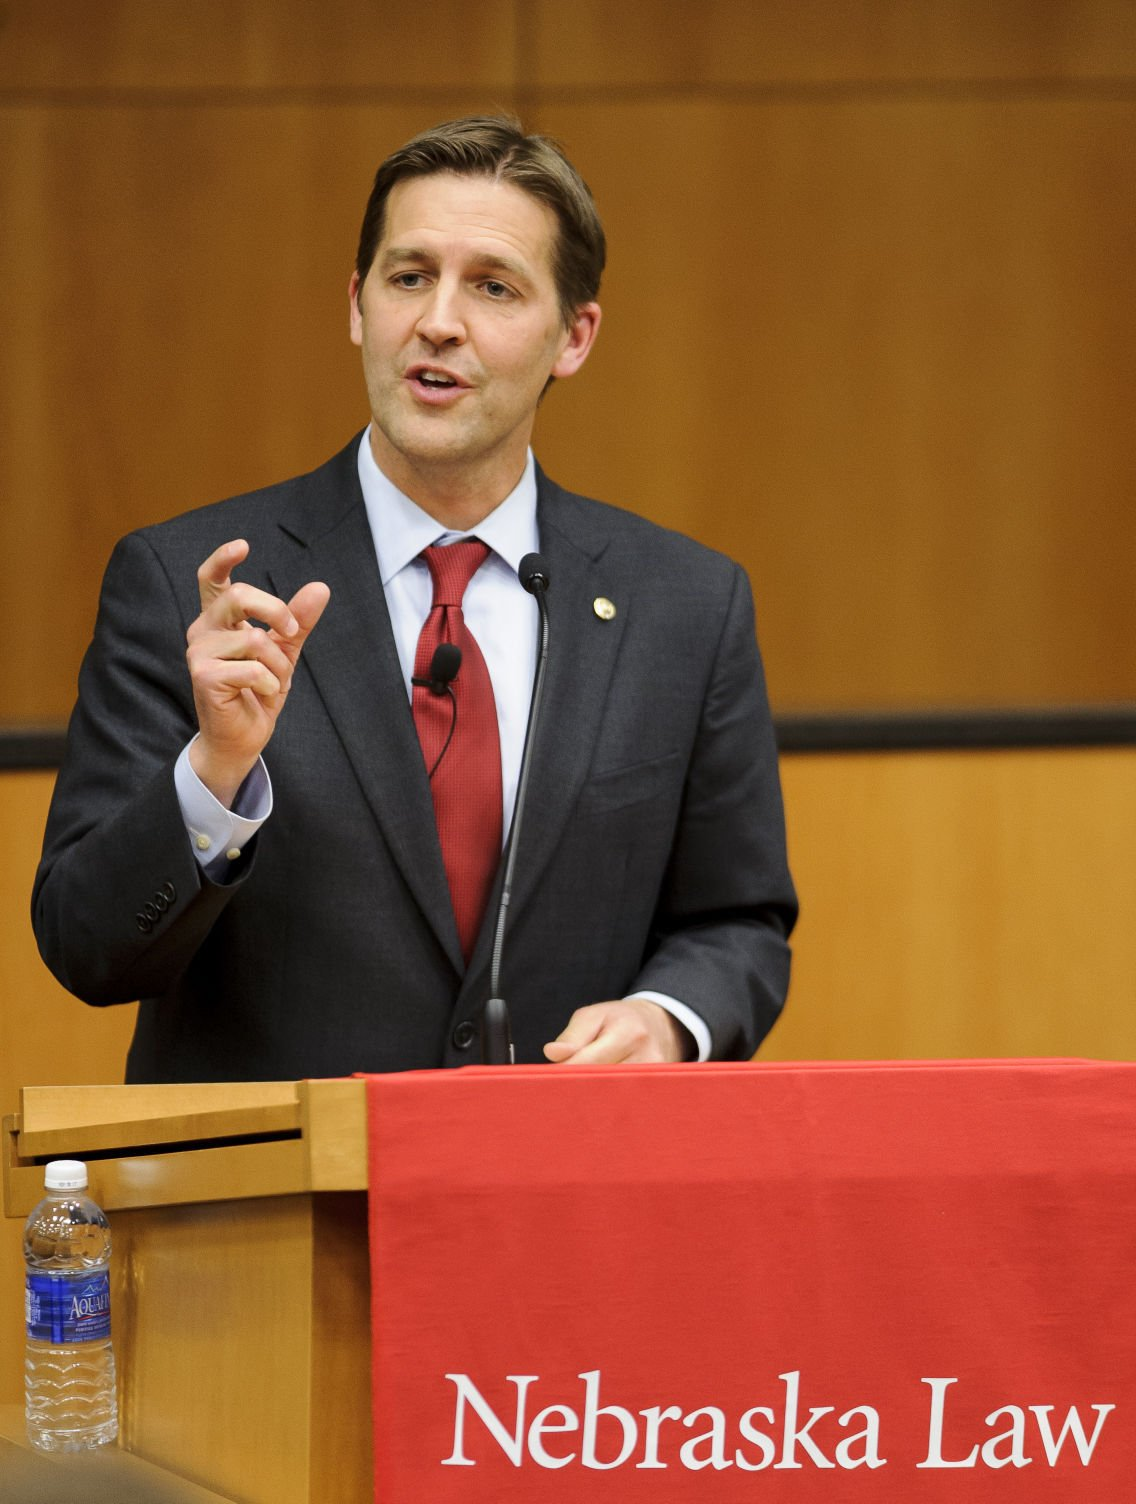 Sasse lecture